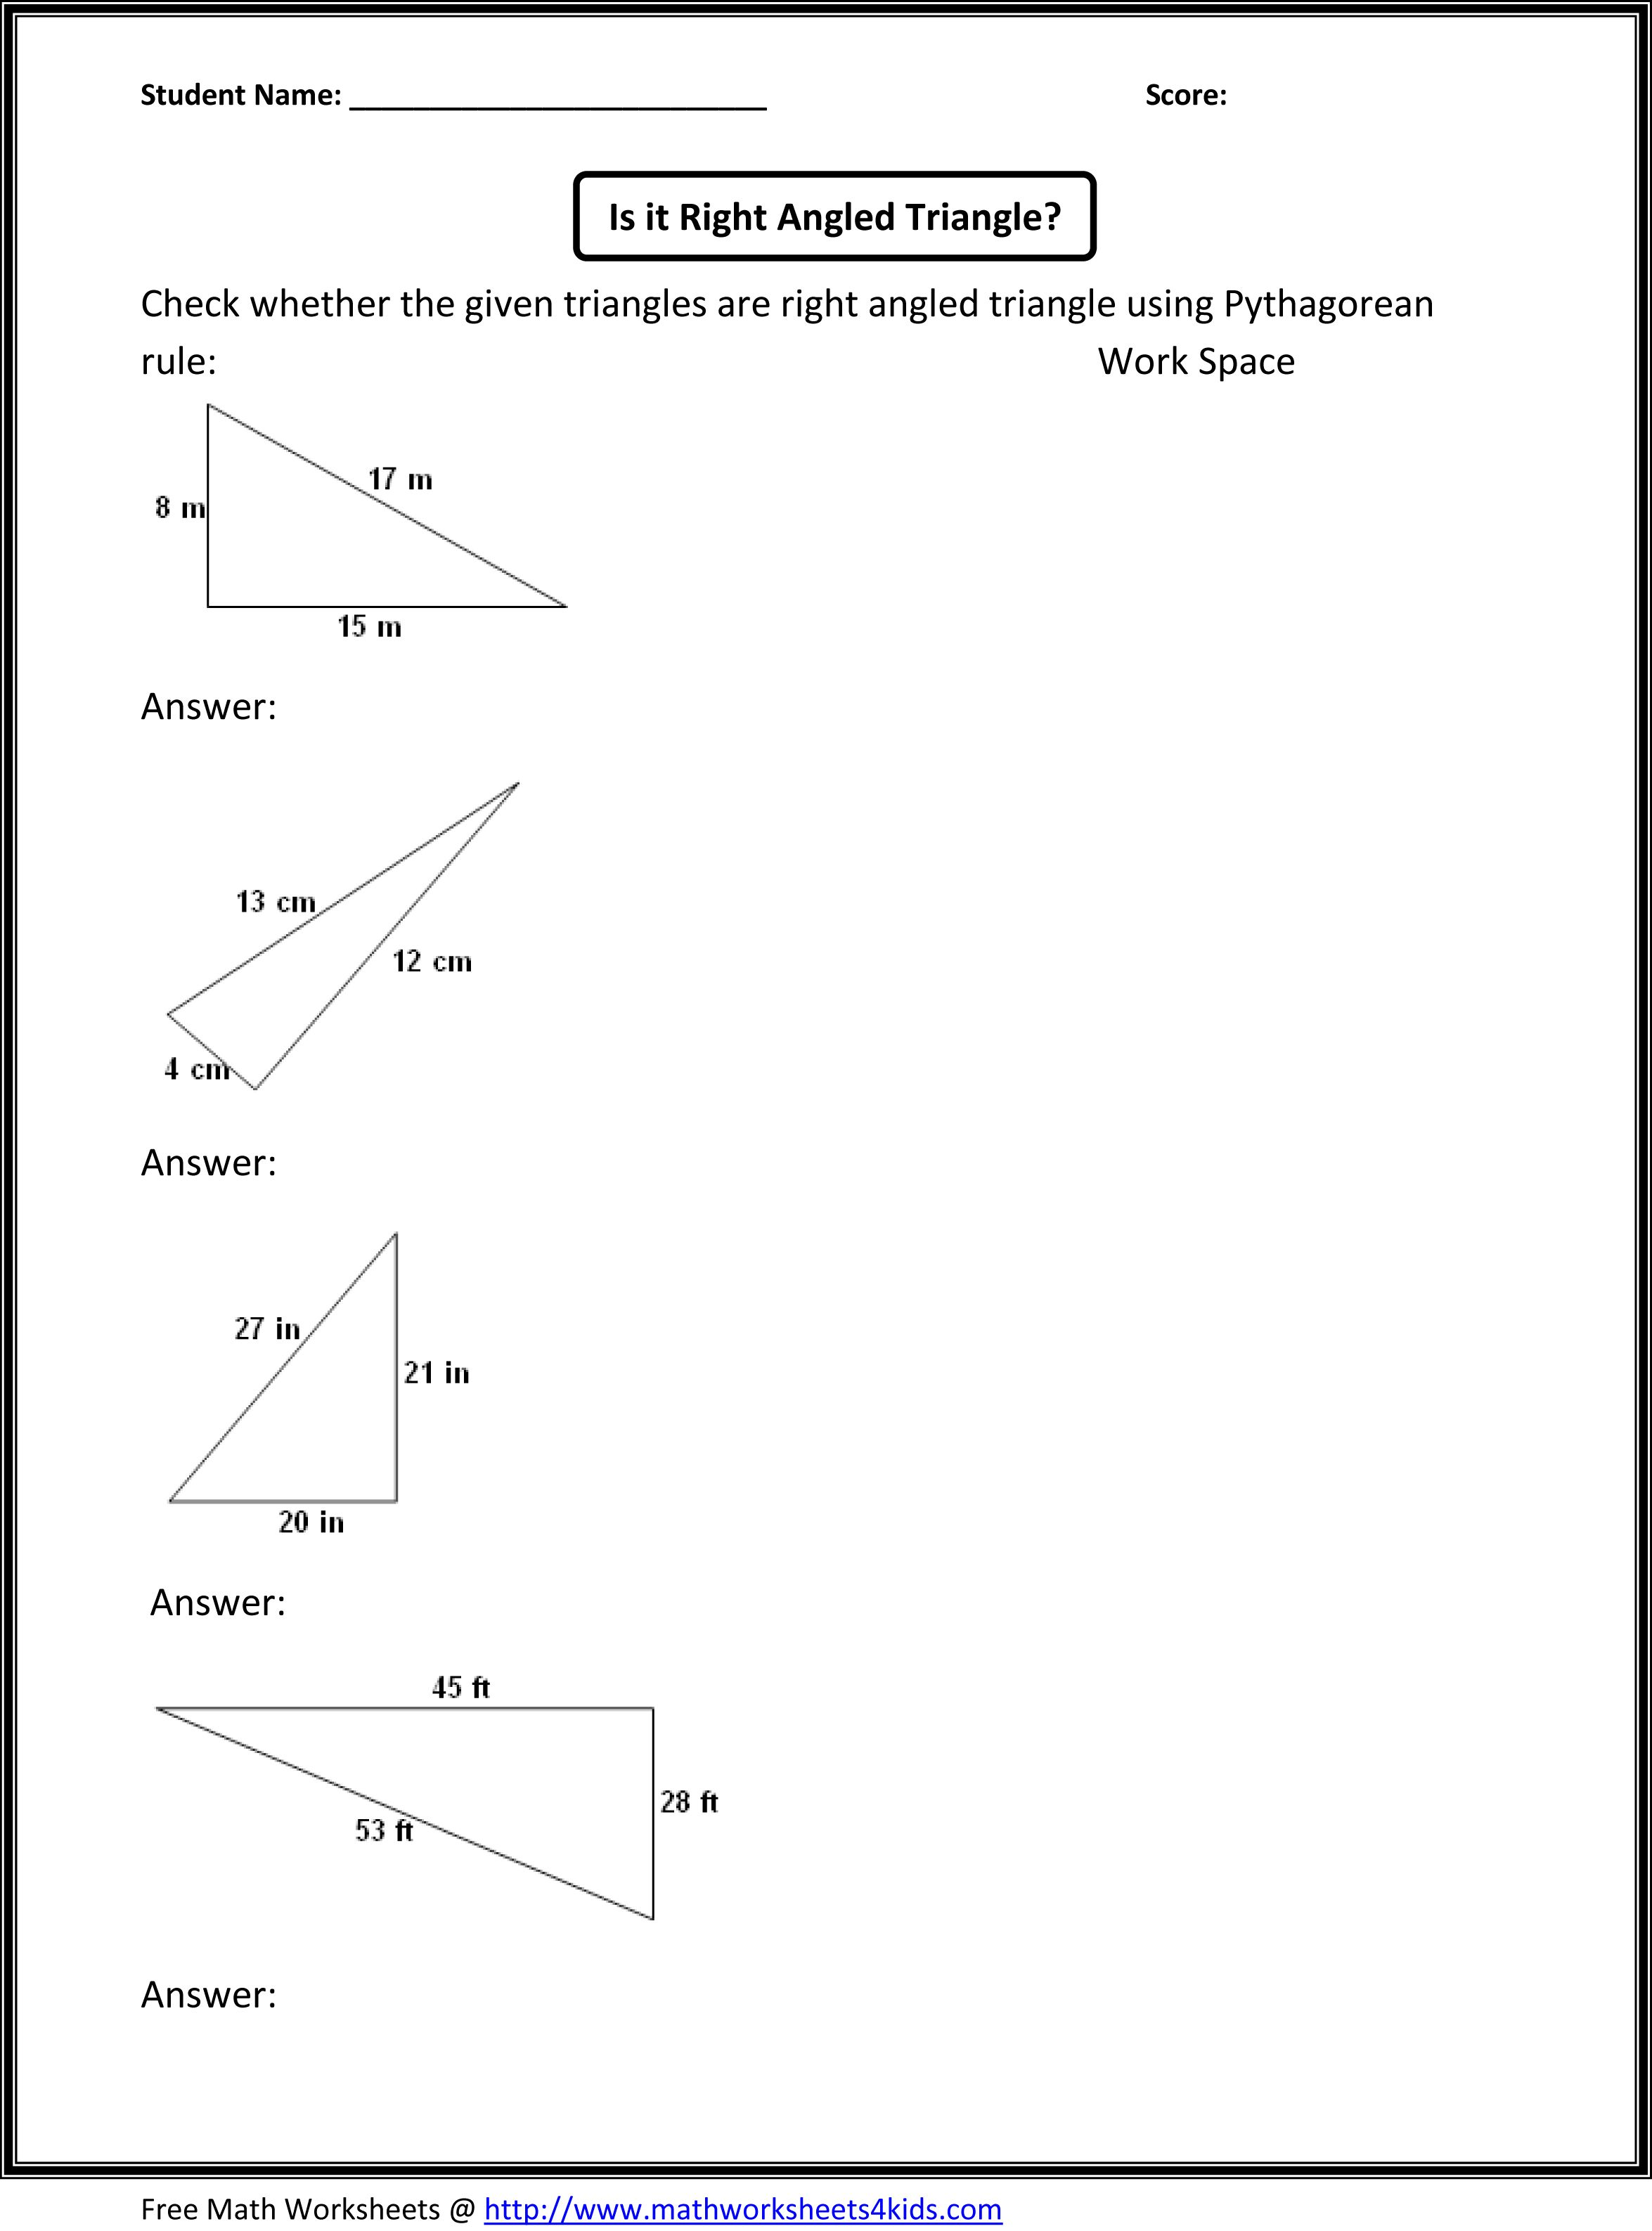 Pythagorean theorem worksheet – Geometry Worksheets High School